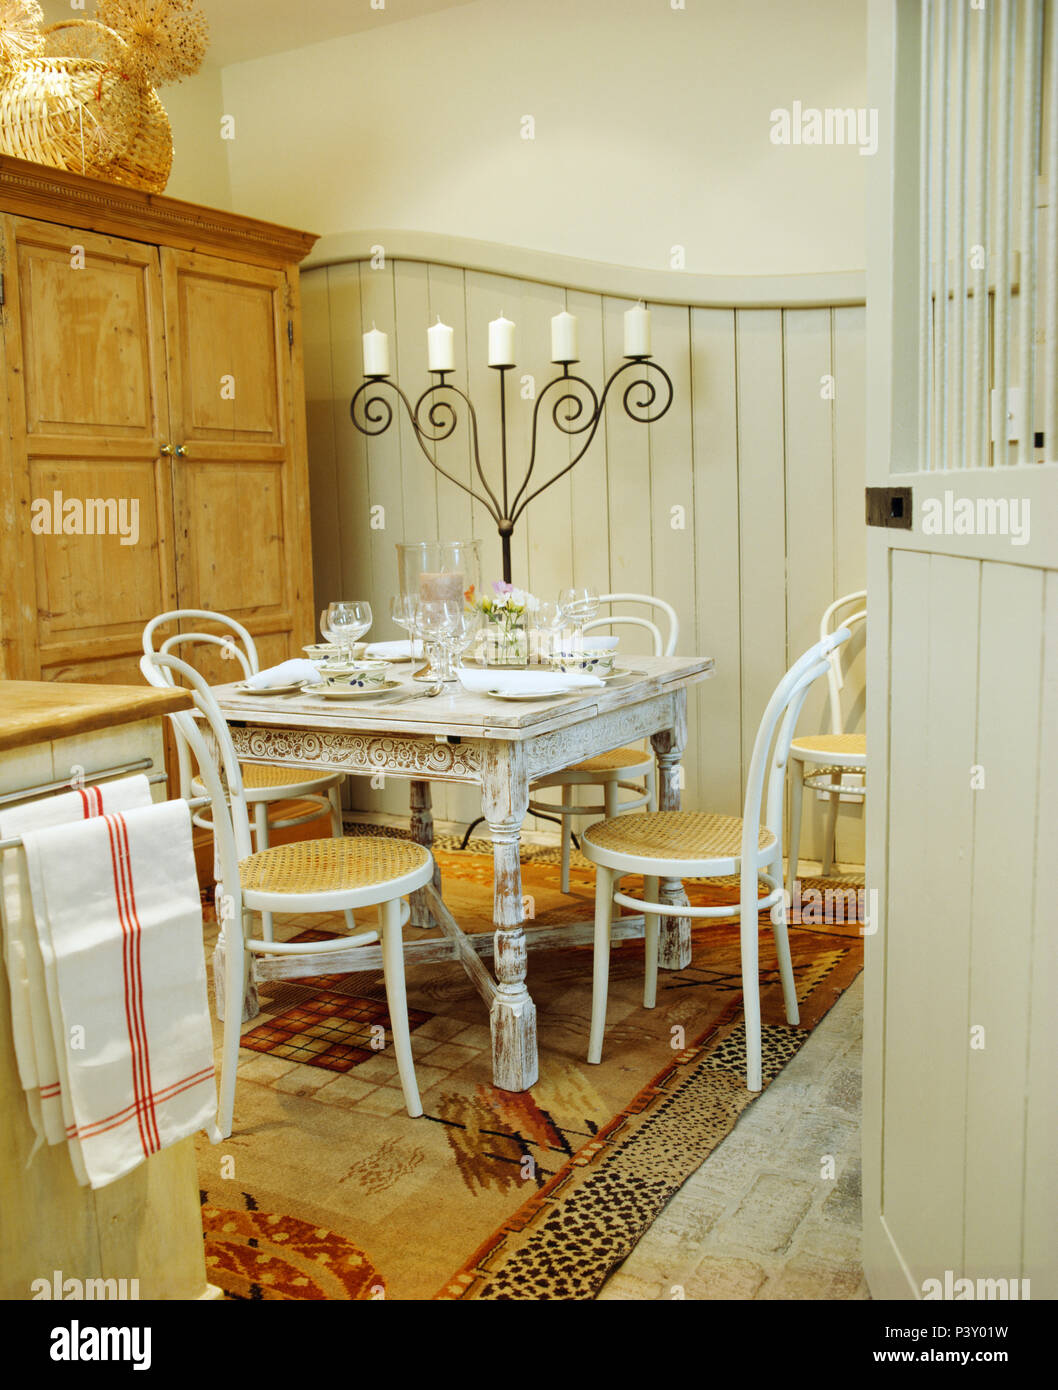 White Bentwood Chairs And Painted Table In Small Dining Room In Converted  Stable With Grey Painted Panelling